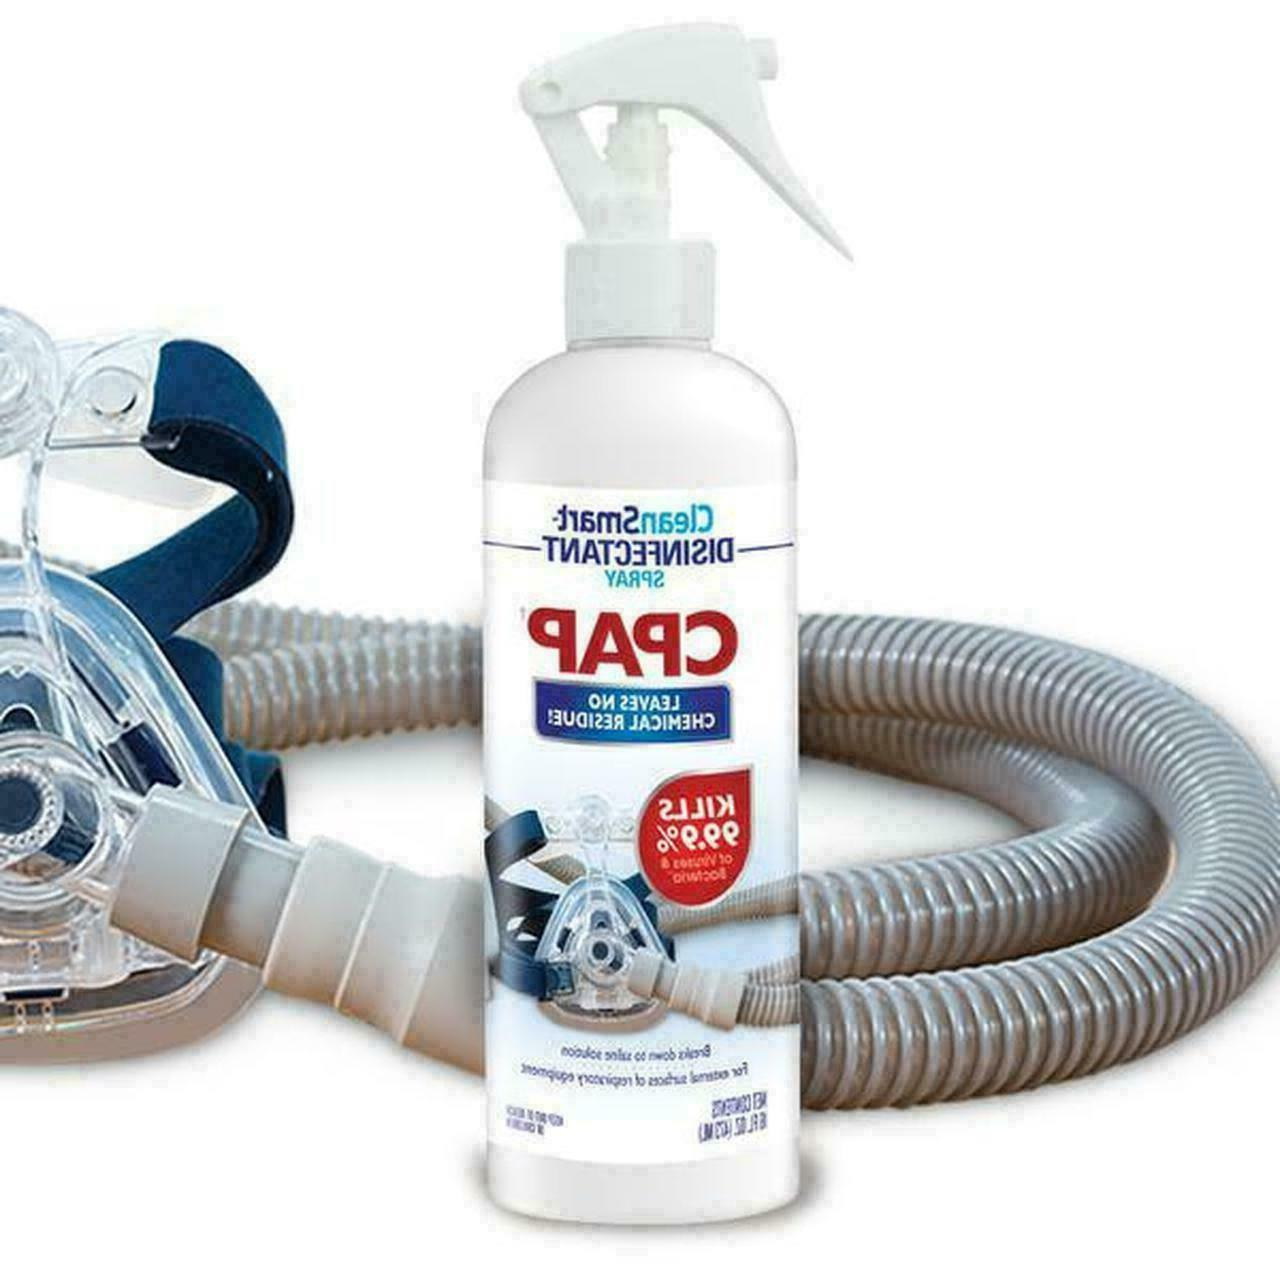 CPAP Disinfectant Spray Lot of 2 §